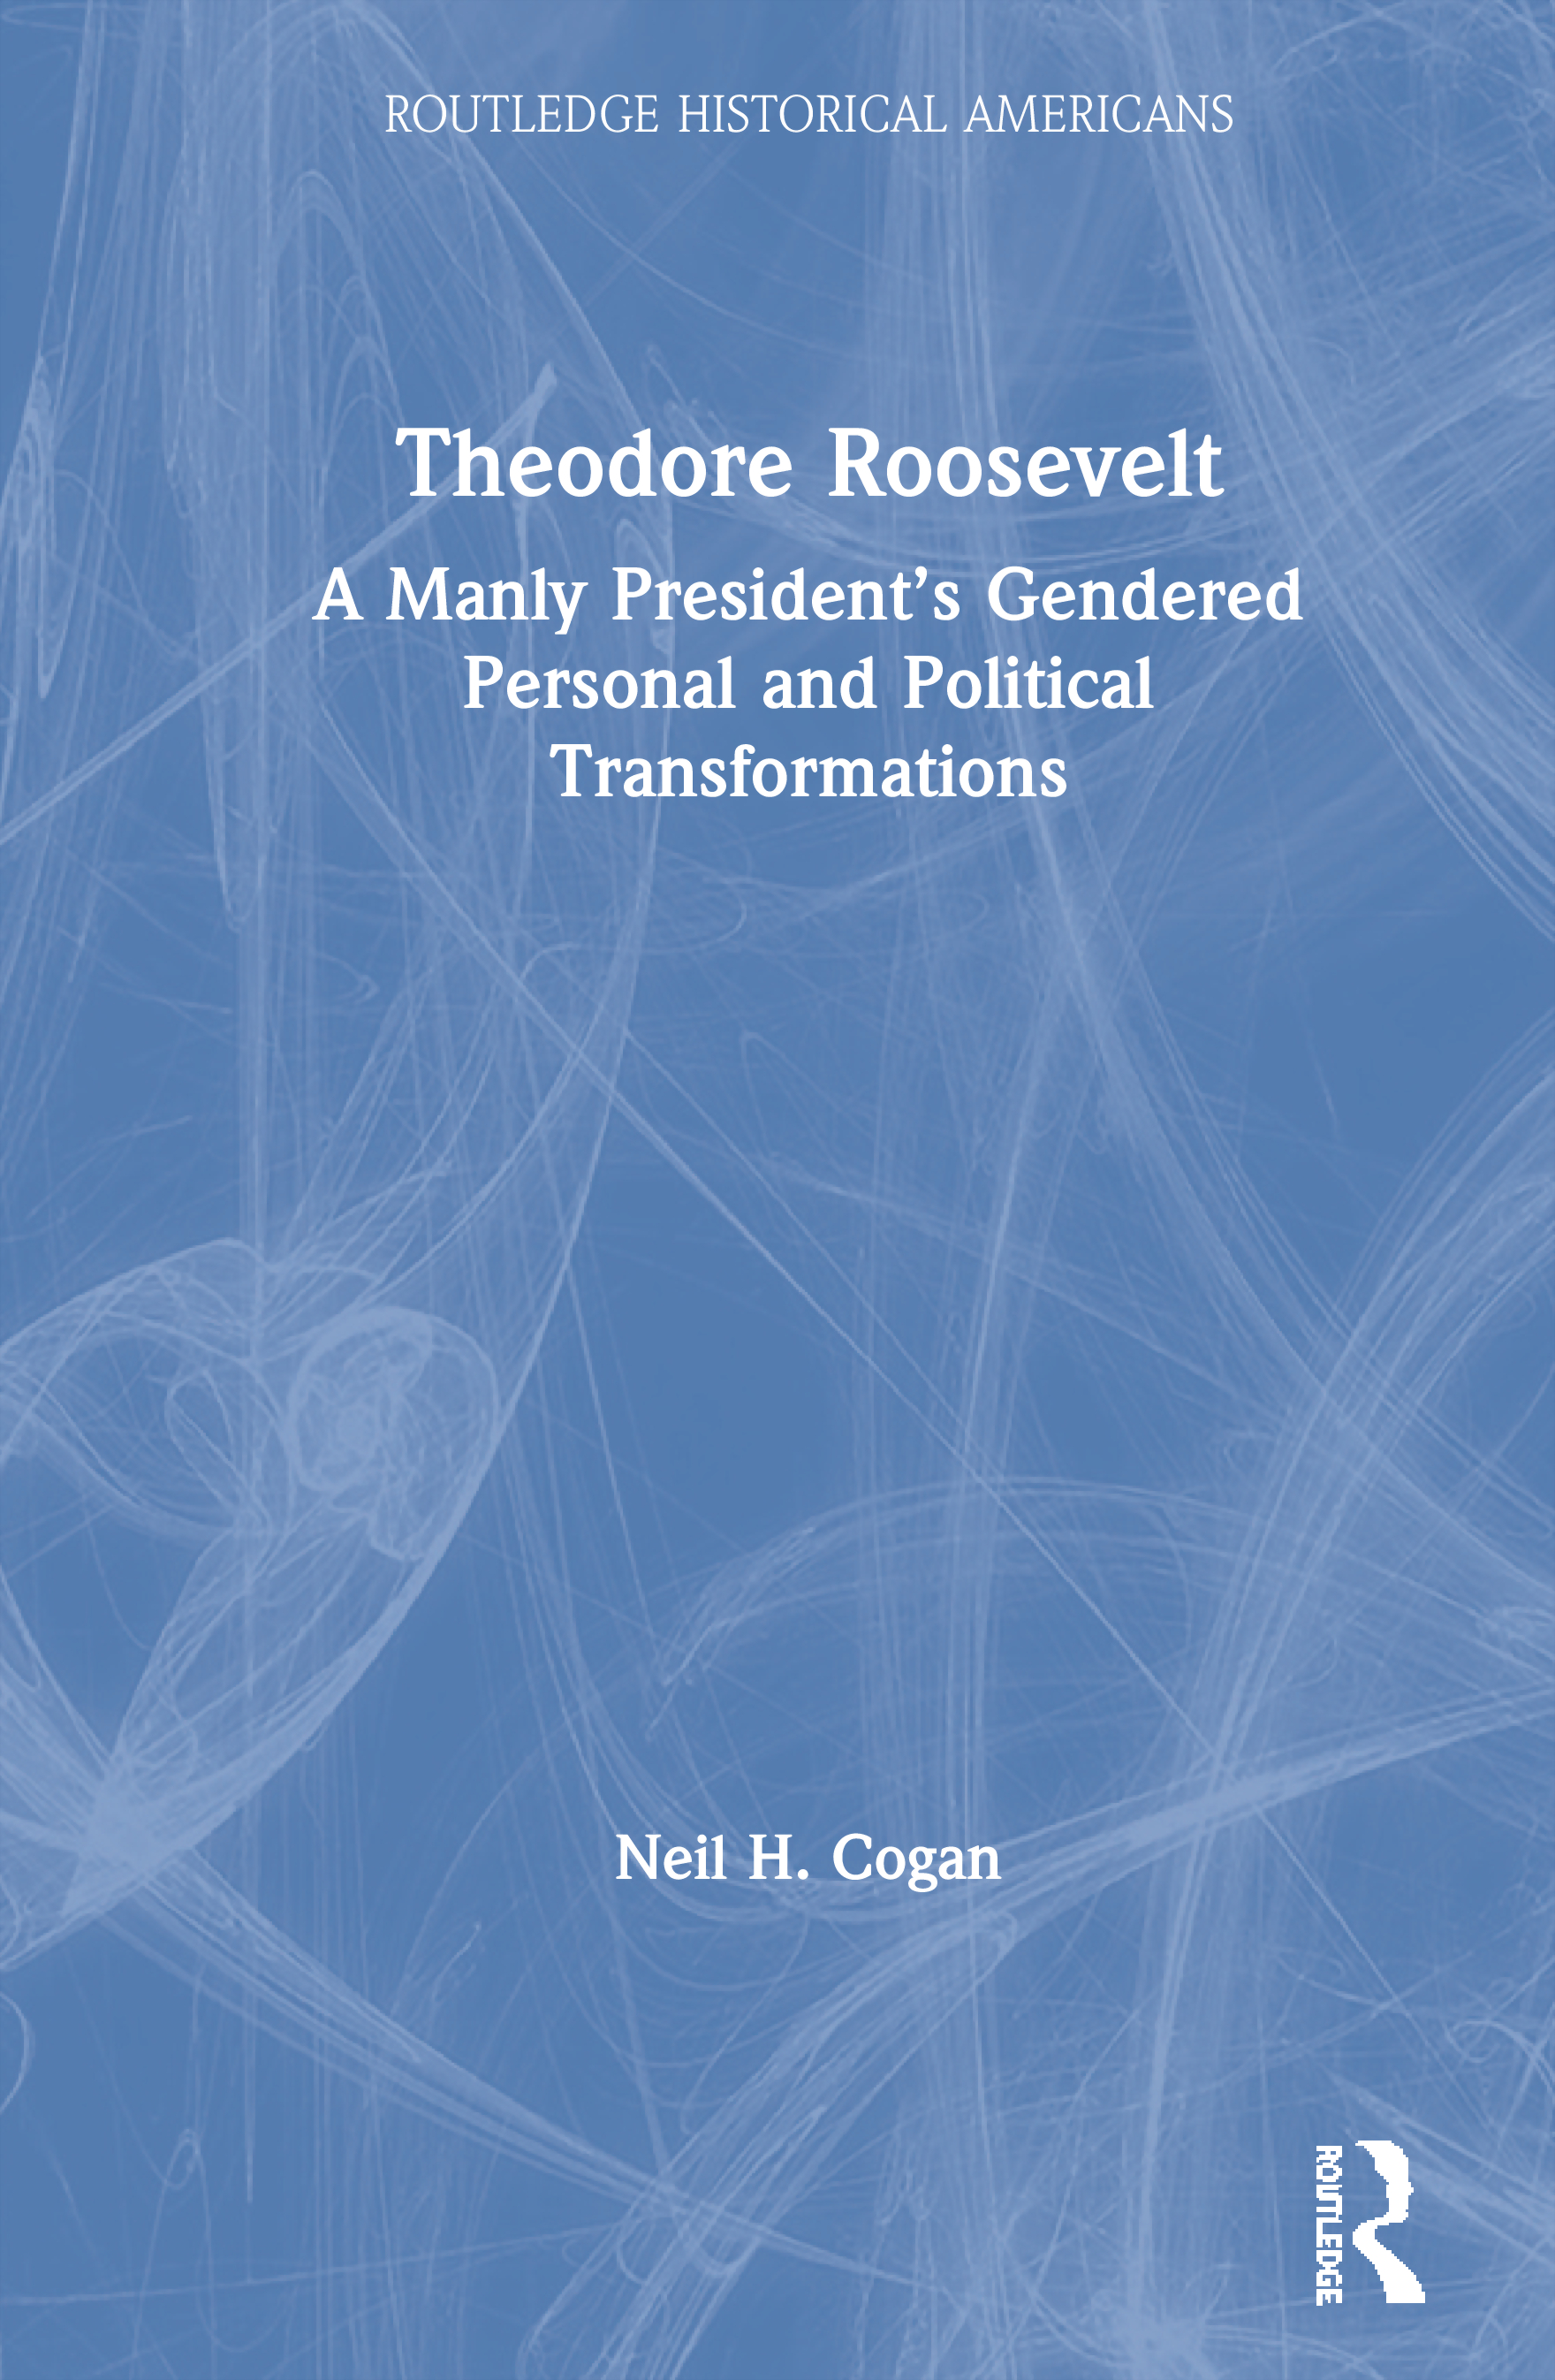 Theodore Roosevelt: A Manly President's Gendered Personal and Political Transformations book cover